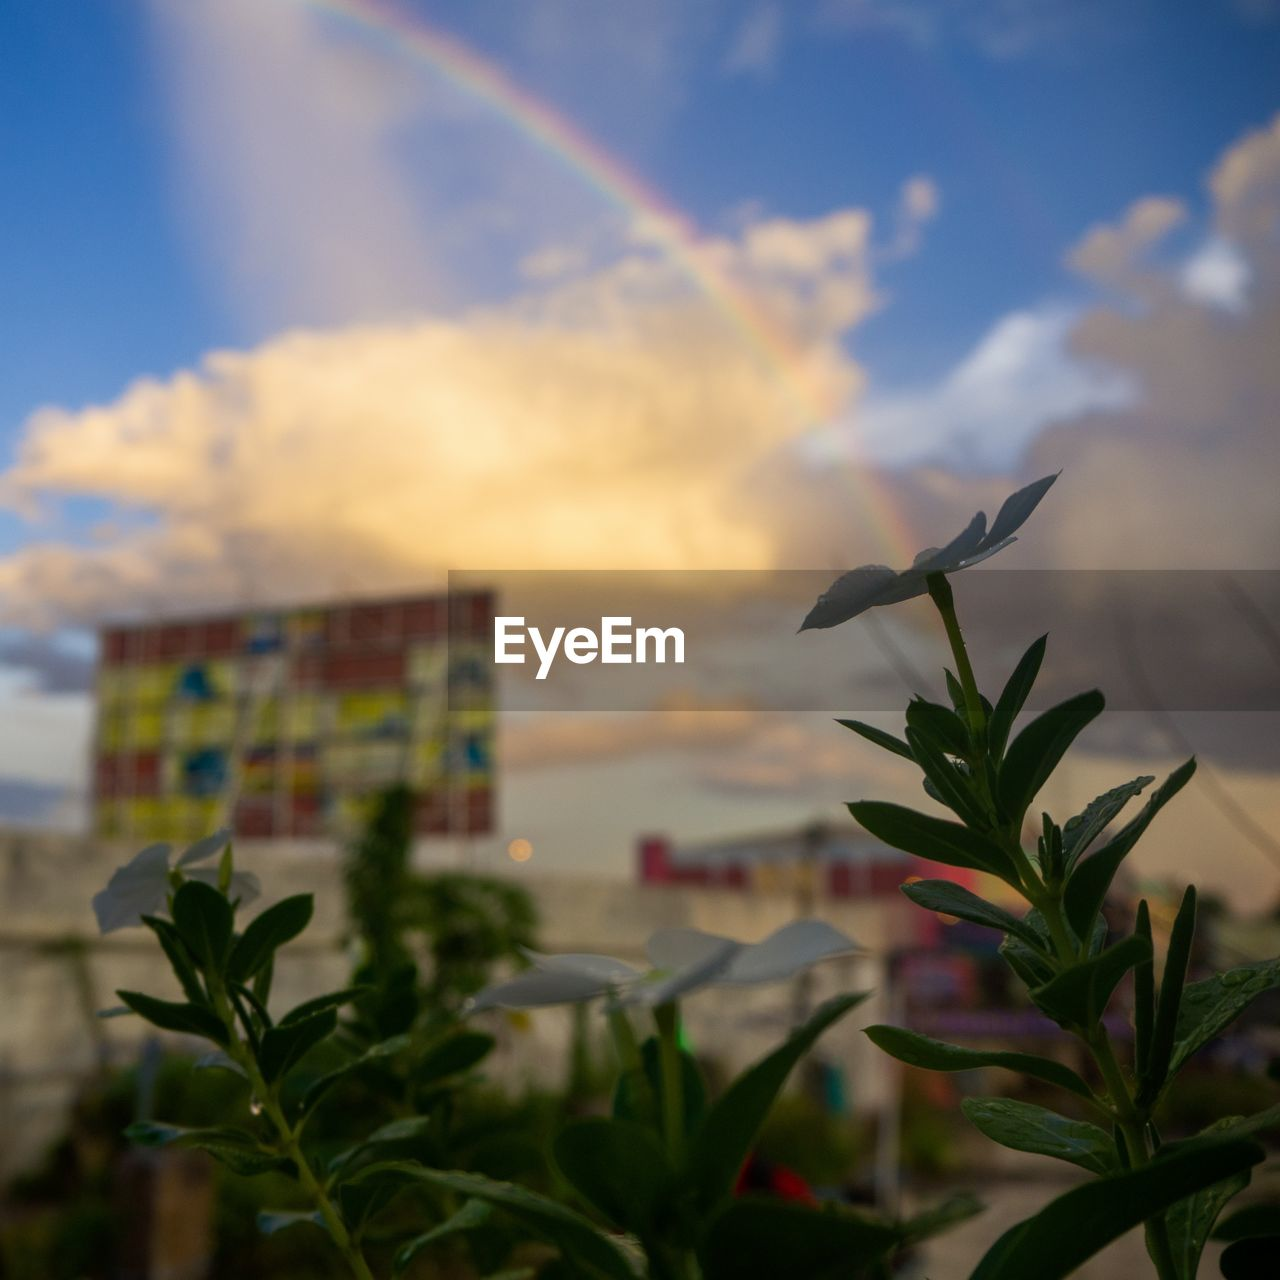 plant part, leaf, plant, cloud - sky, sky, growth, beauty in nature, nature, no people, focus on foreground, close-up, multi colored, outdoors, architecture, built structure, day, selective focus, scenics - nature, flowering plant, flower